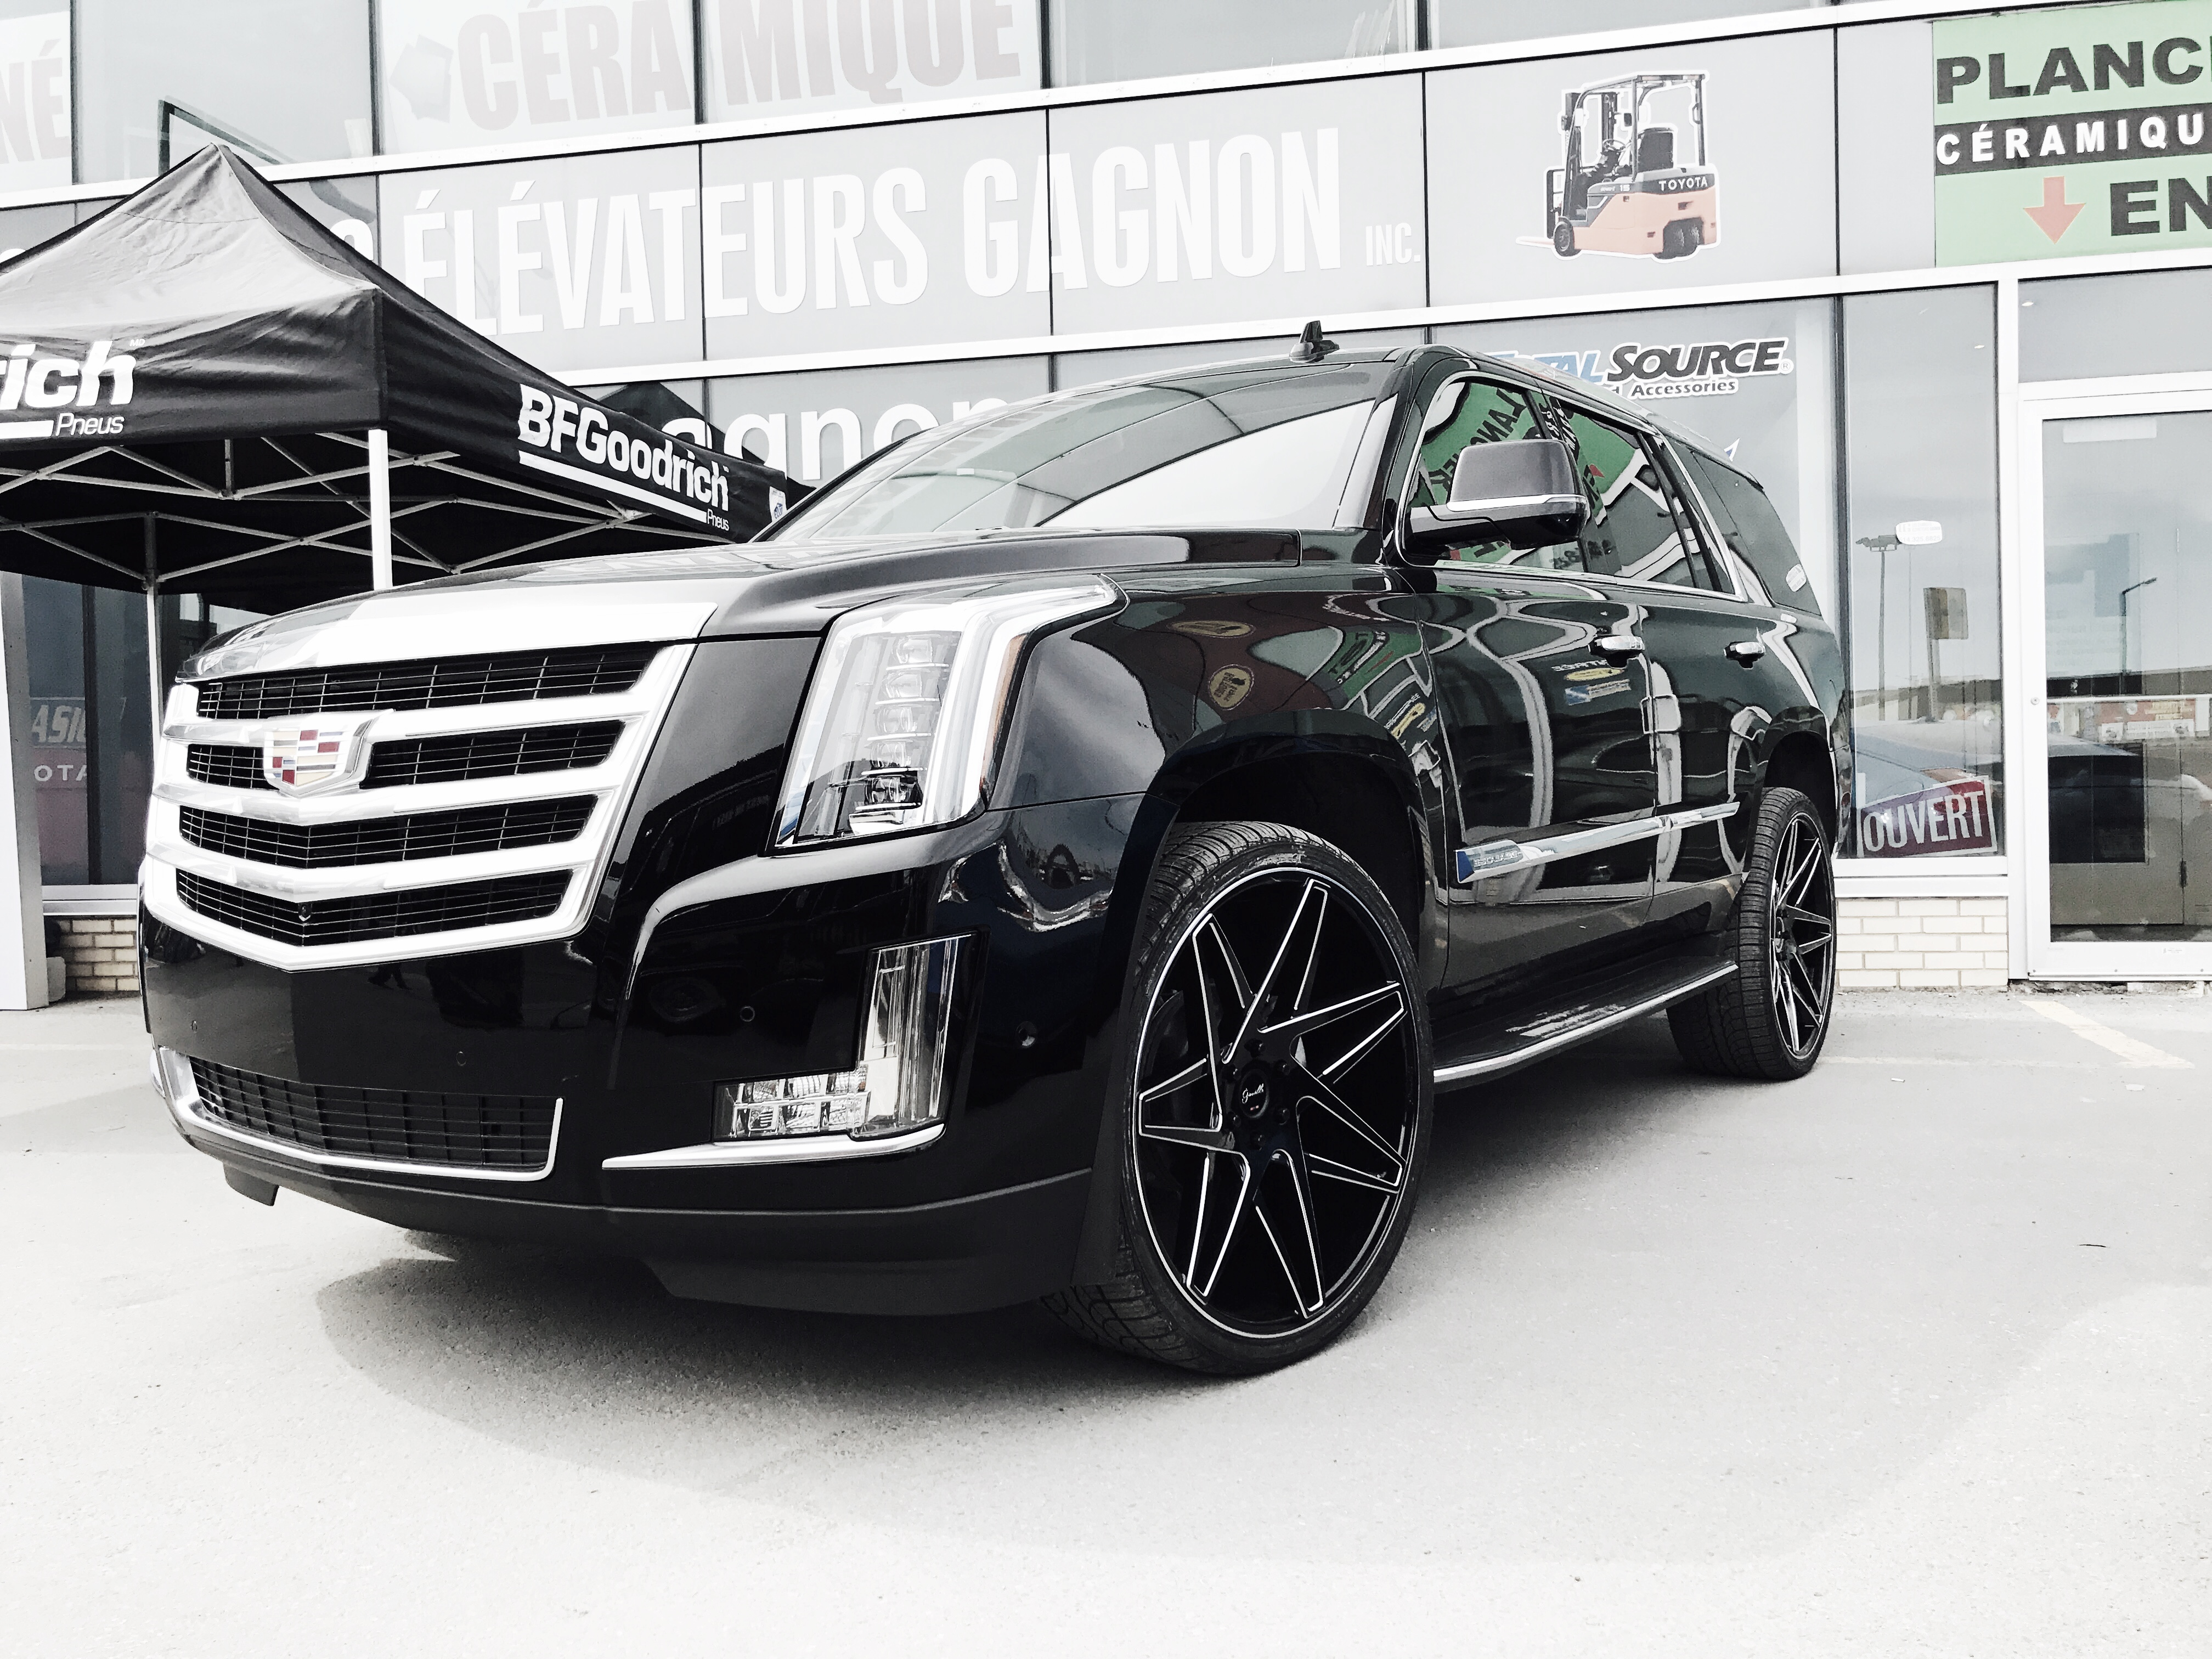 chauffeured transportation vehicles dsc escalade accessories ecostyle cadillac